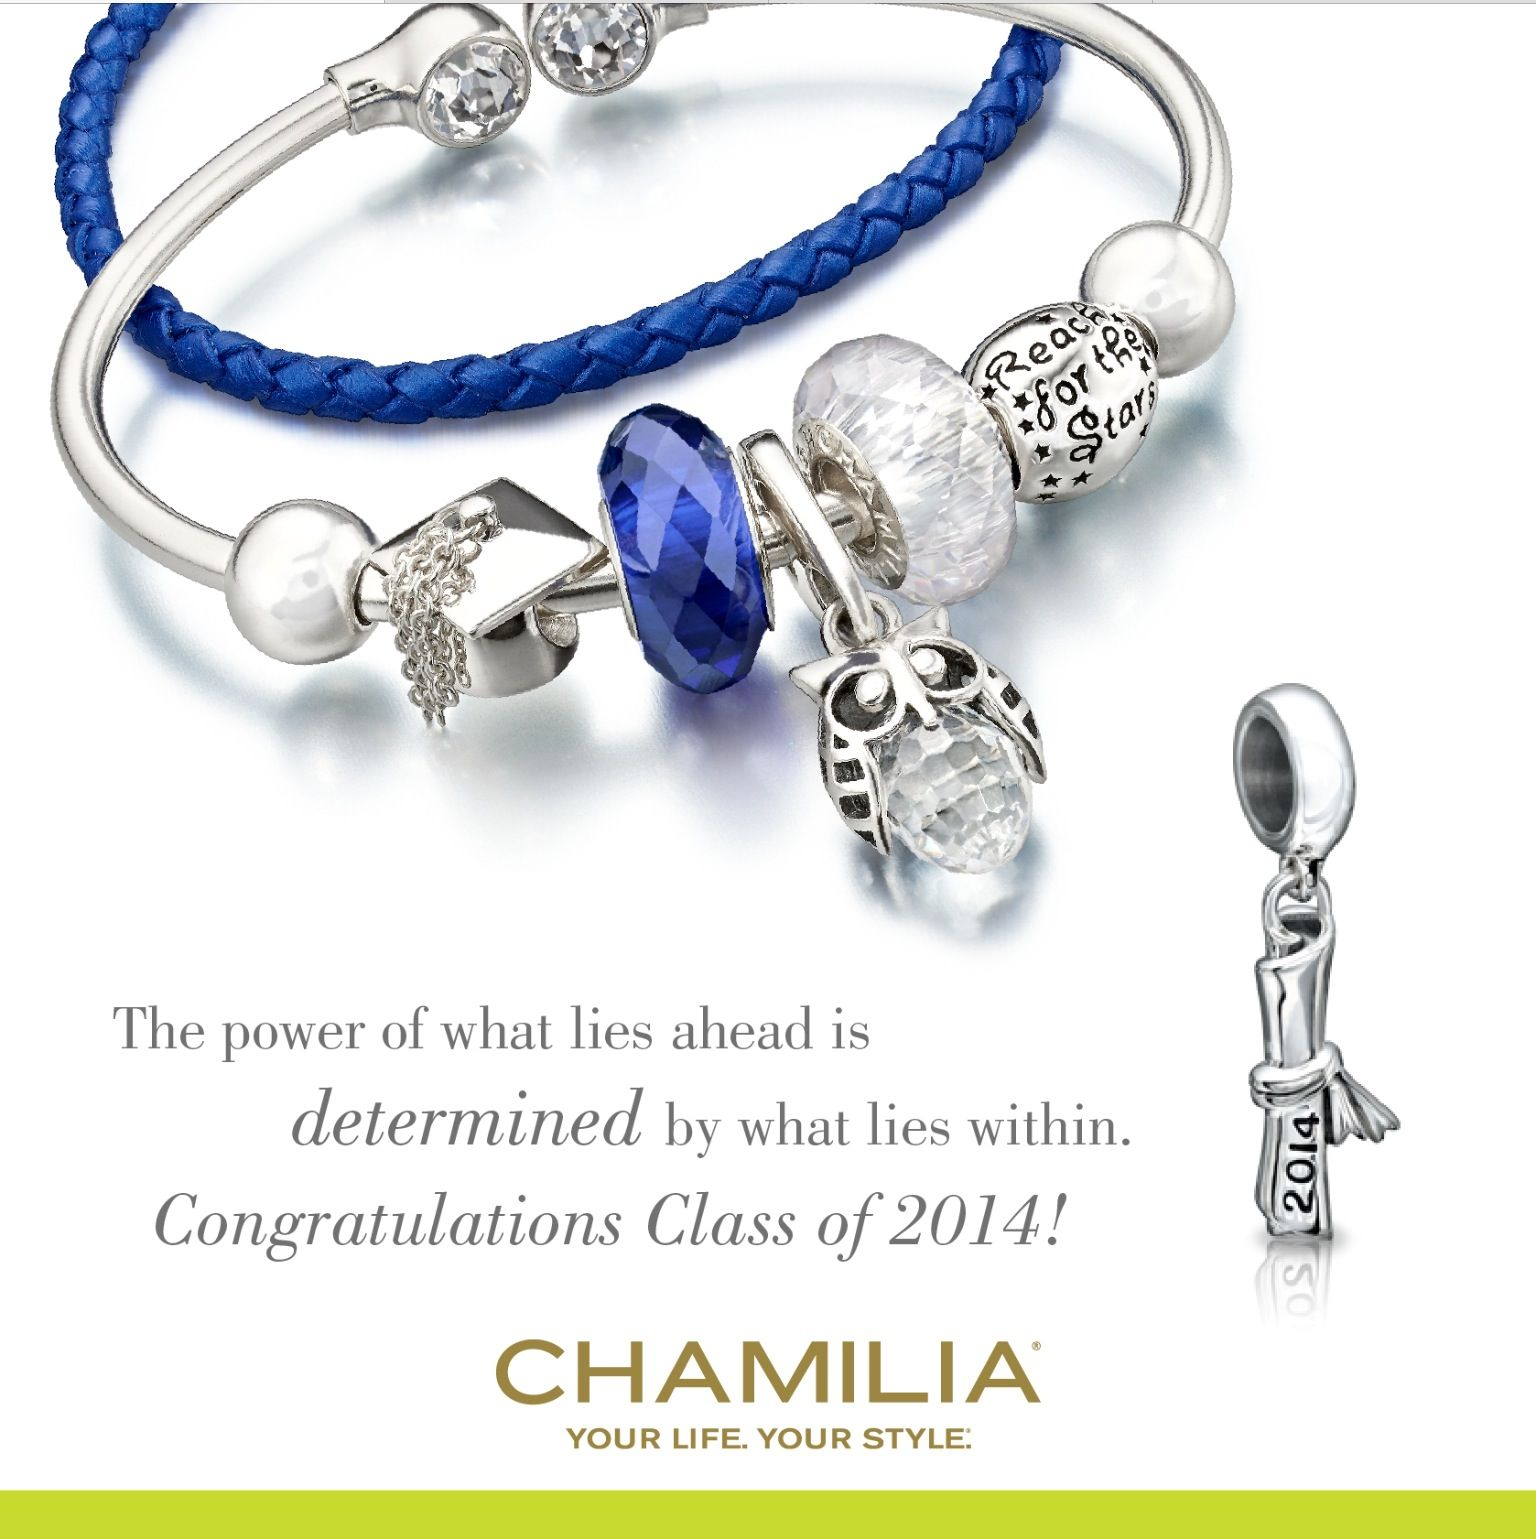 A Beautiful Graduation Themed Chamilia Bracelet Featuring The Wise Owl Charm,  The Graduation Cap And